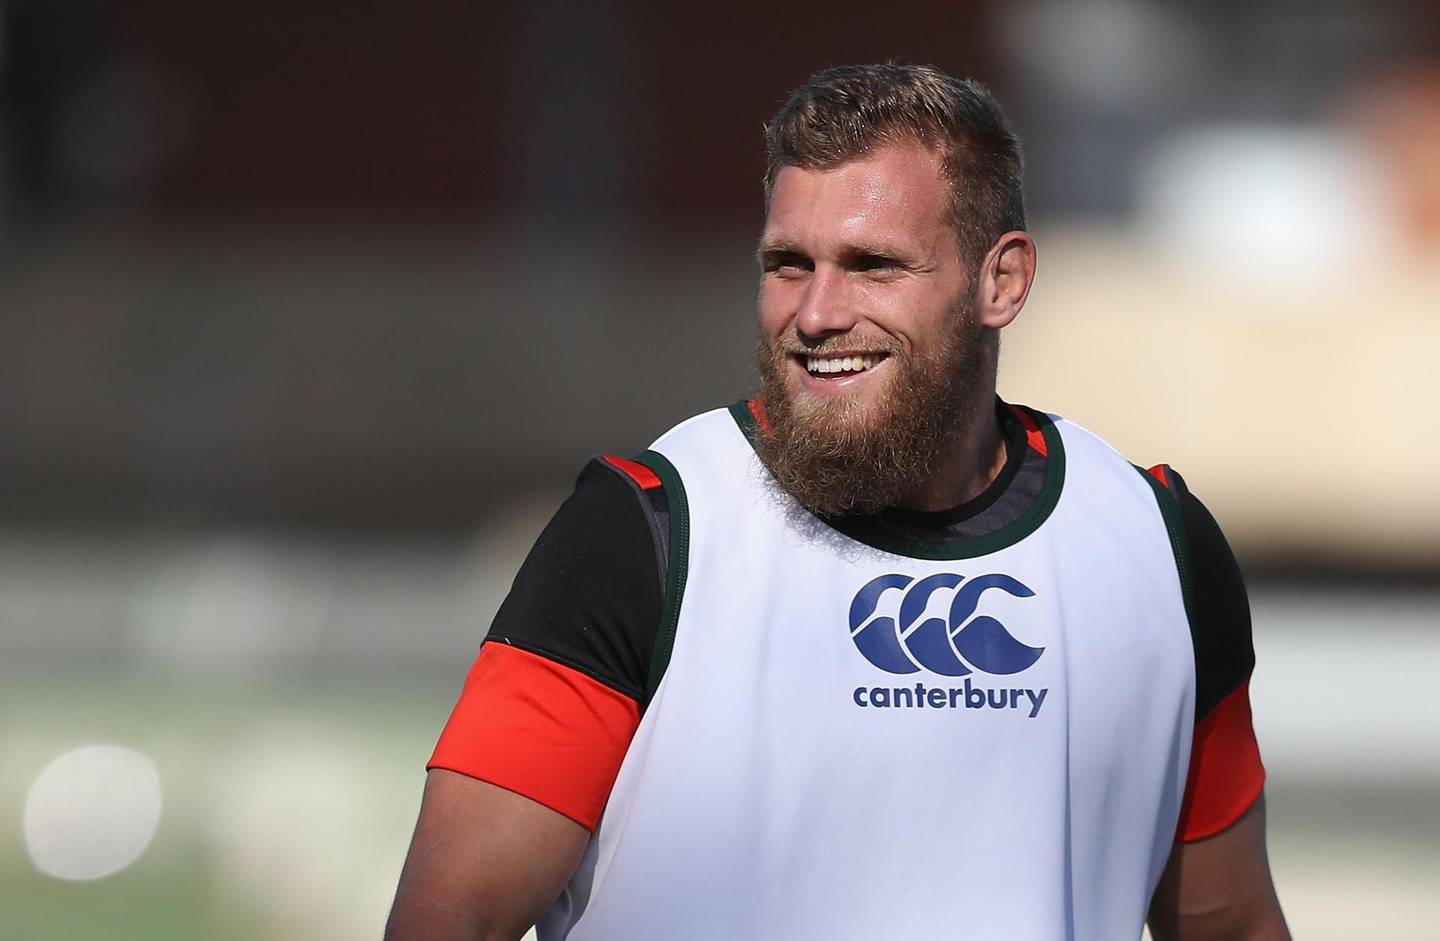 DURBAN, SOUTH AFRICA - JUNE 05:  Brad Shields looks on during the England training session held at Kings Park Stadium on June 5, 2018 in Durban, South Africa.  (Photo by David Rogers/Getty Images)